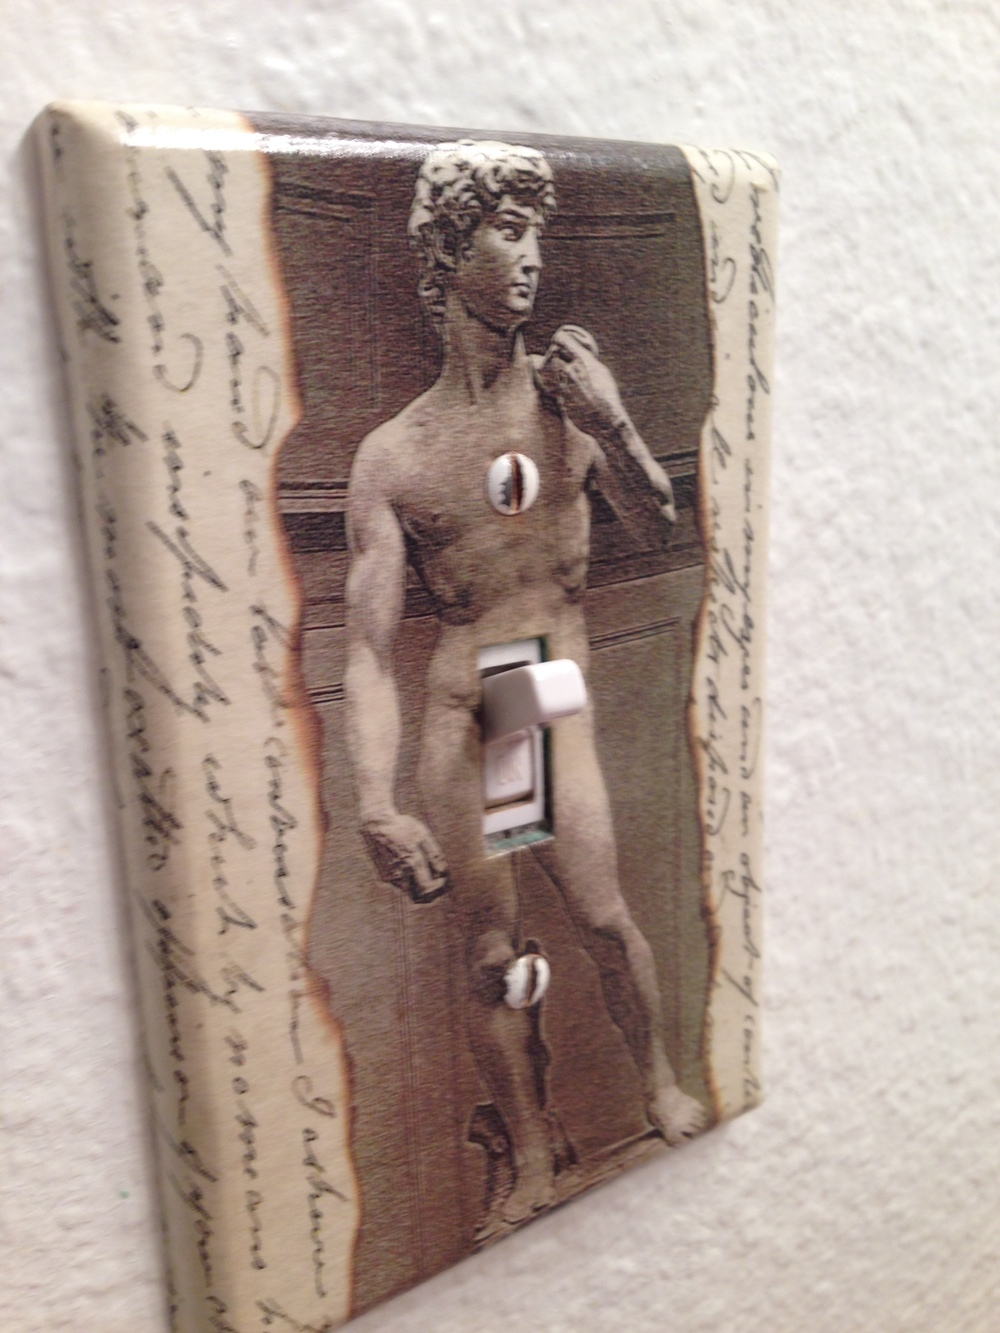 A cheeky light switch at Carole's portland oregon home.